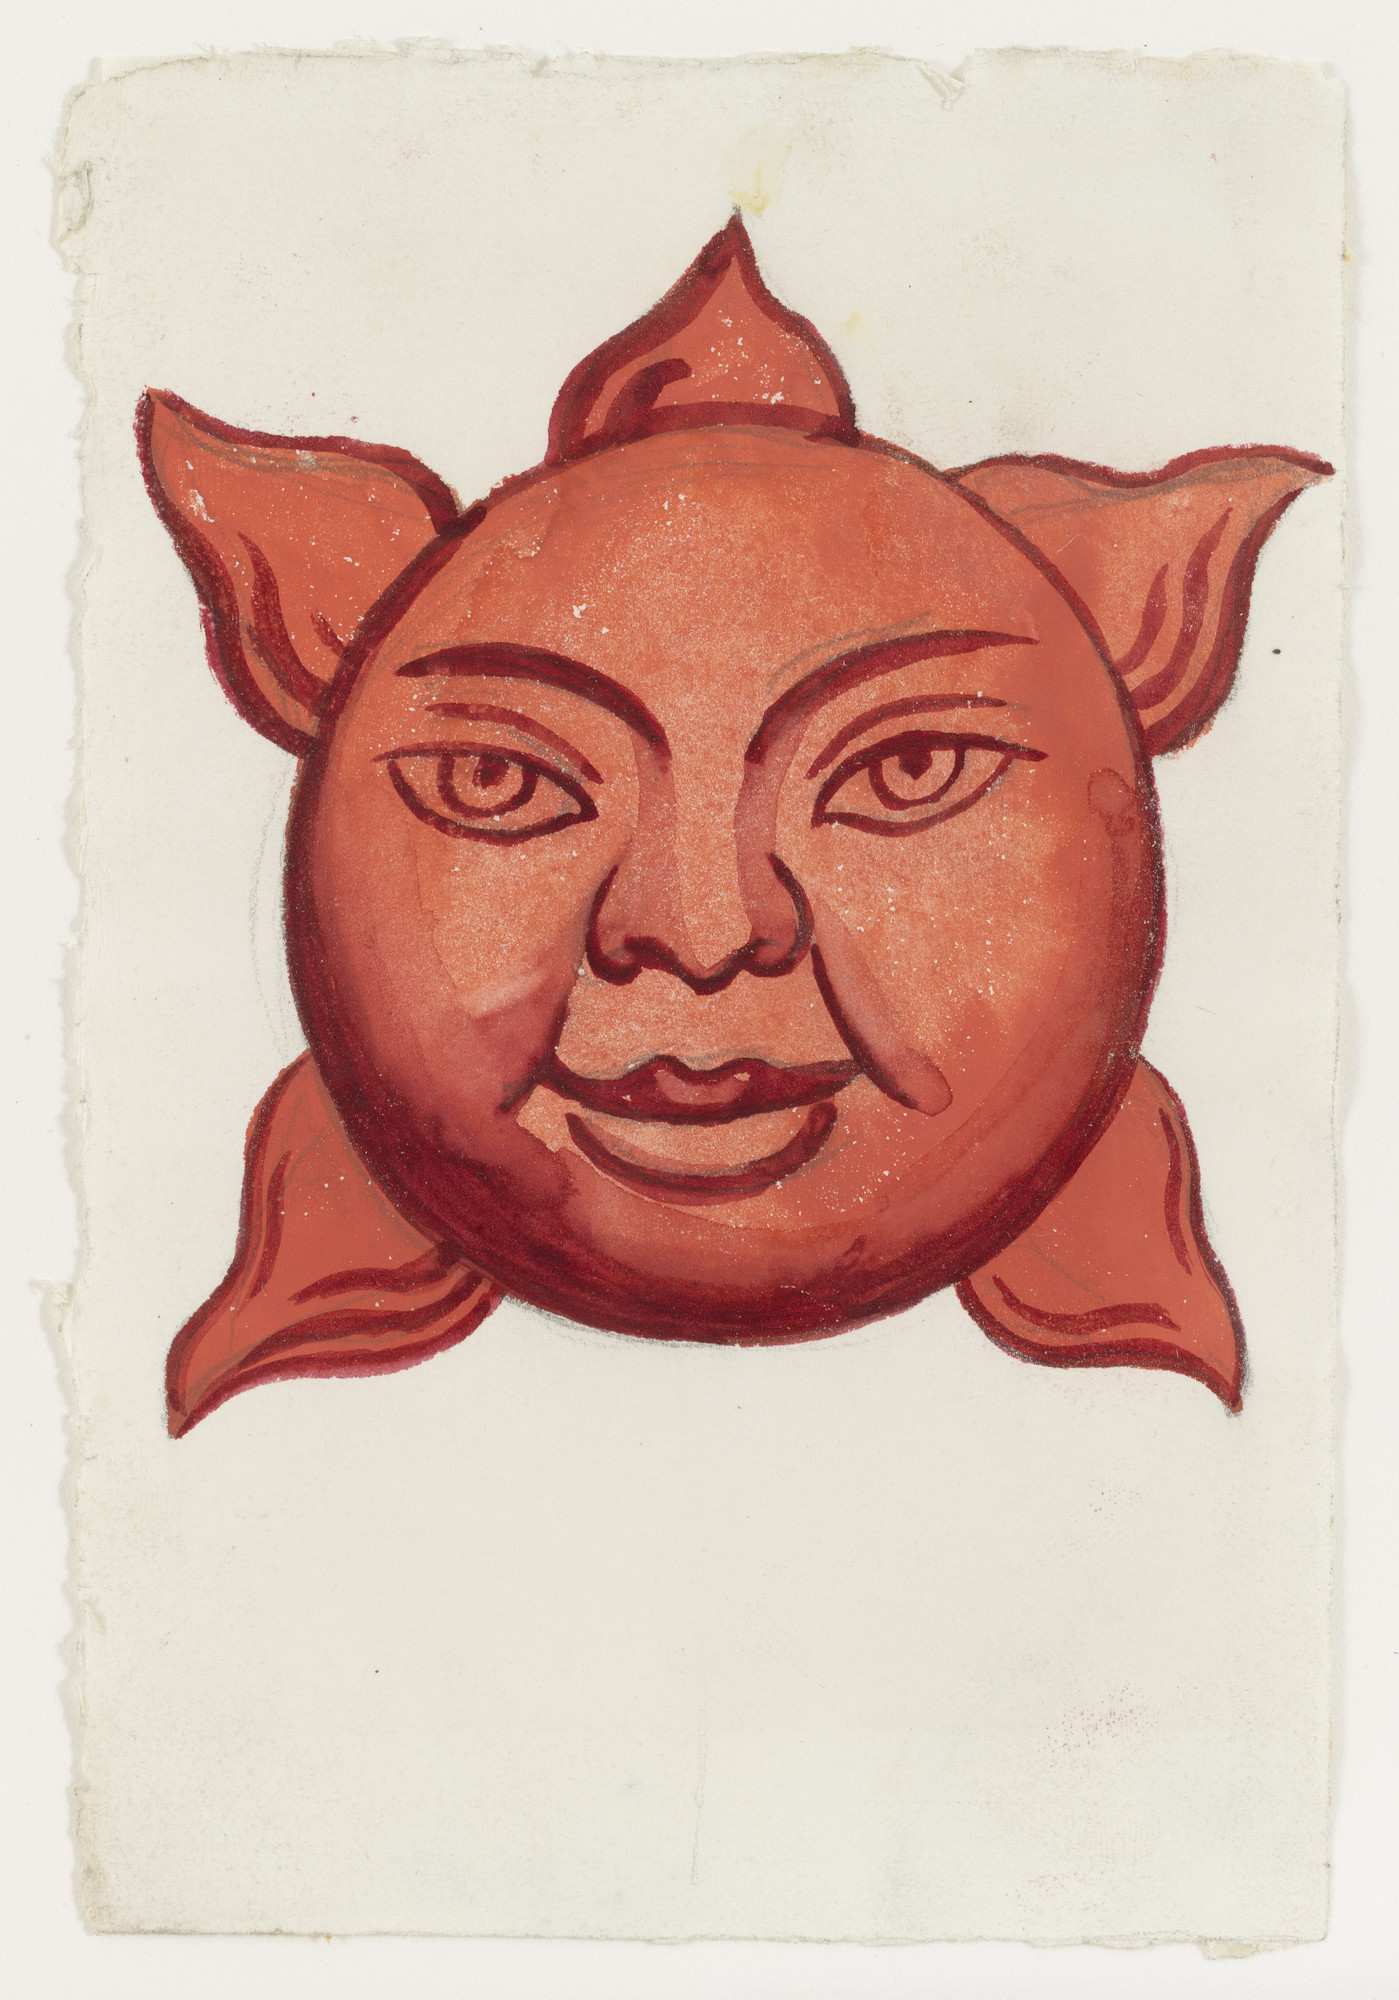 Diego Rivera. Sun, design for H.P. (Horsepower). (1927 or 1931?)